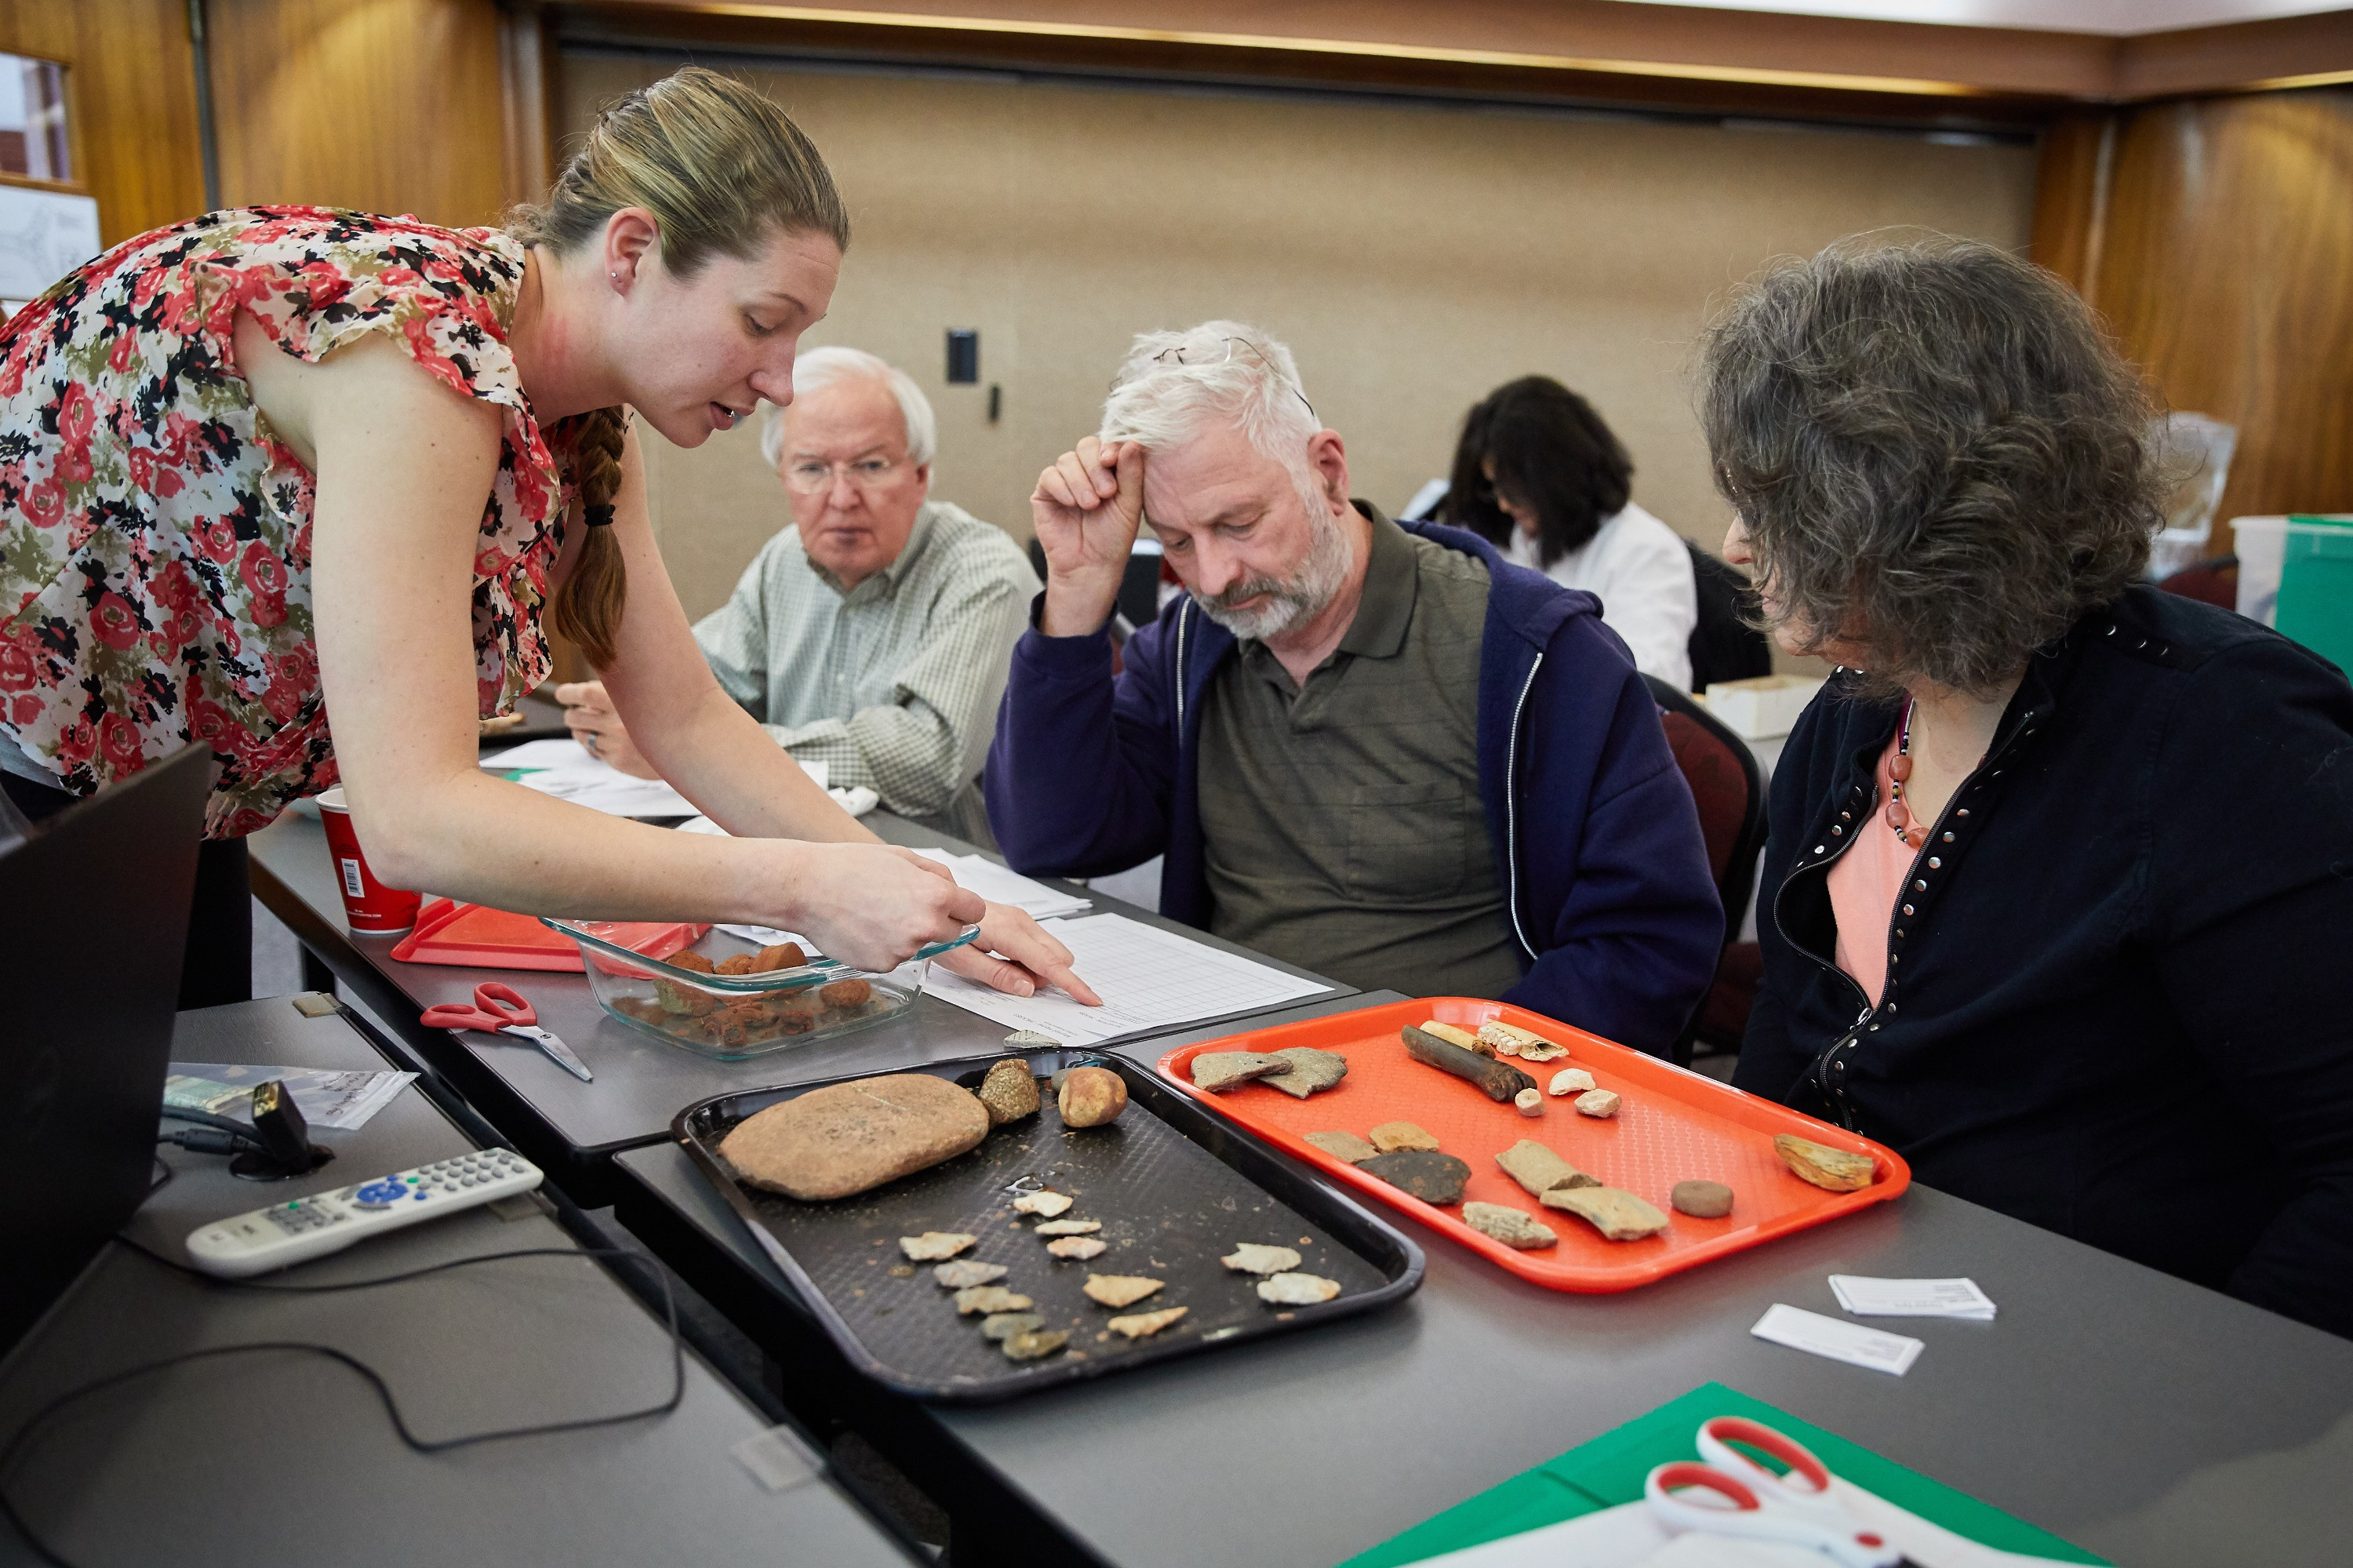 Sarah Luthman teaches workshop participants about curation practices at an Archaeological Skills Workshop in 2018.